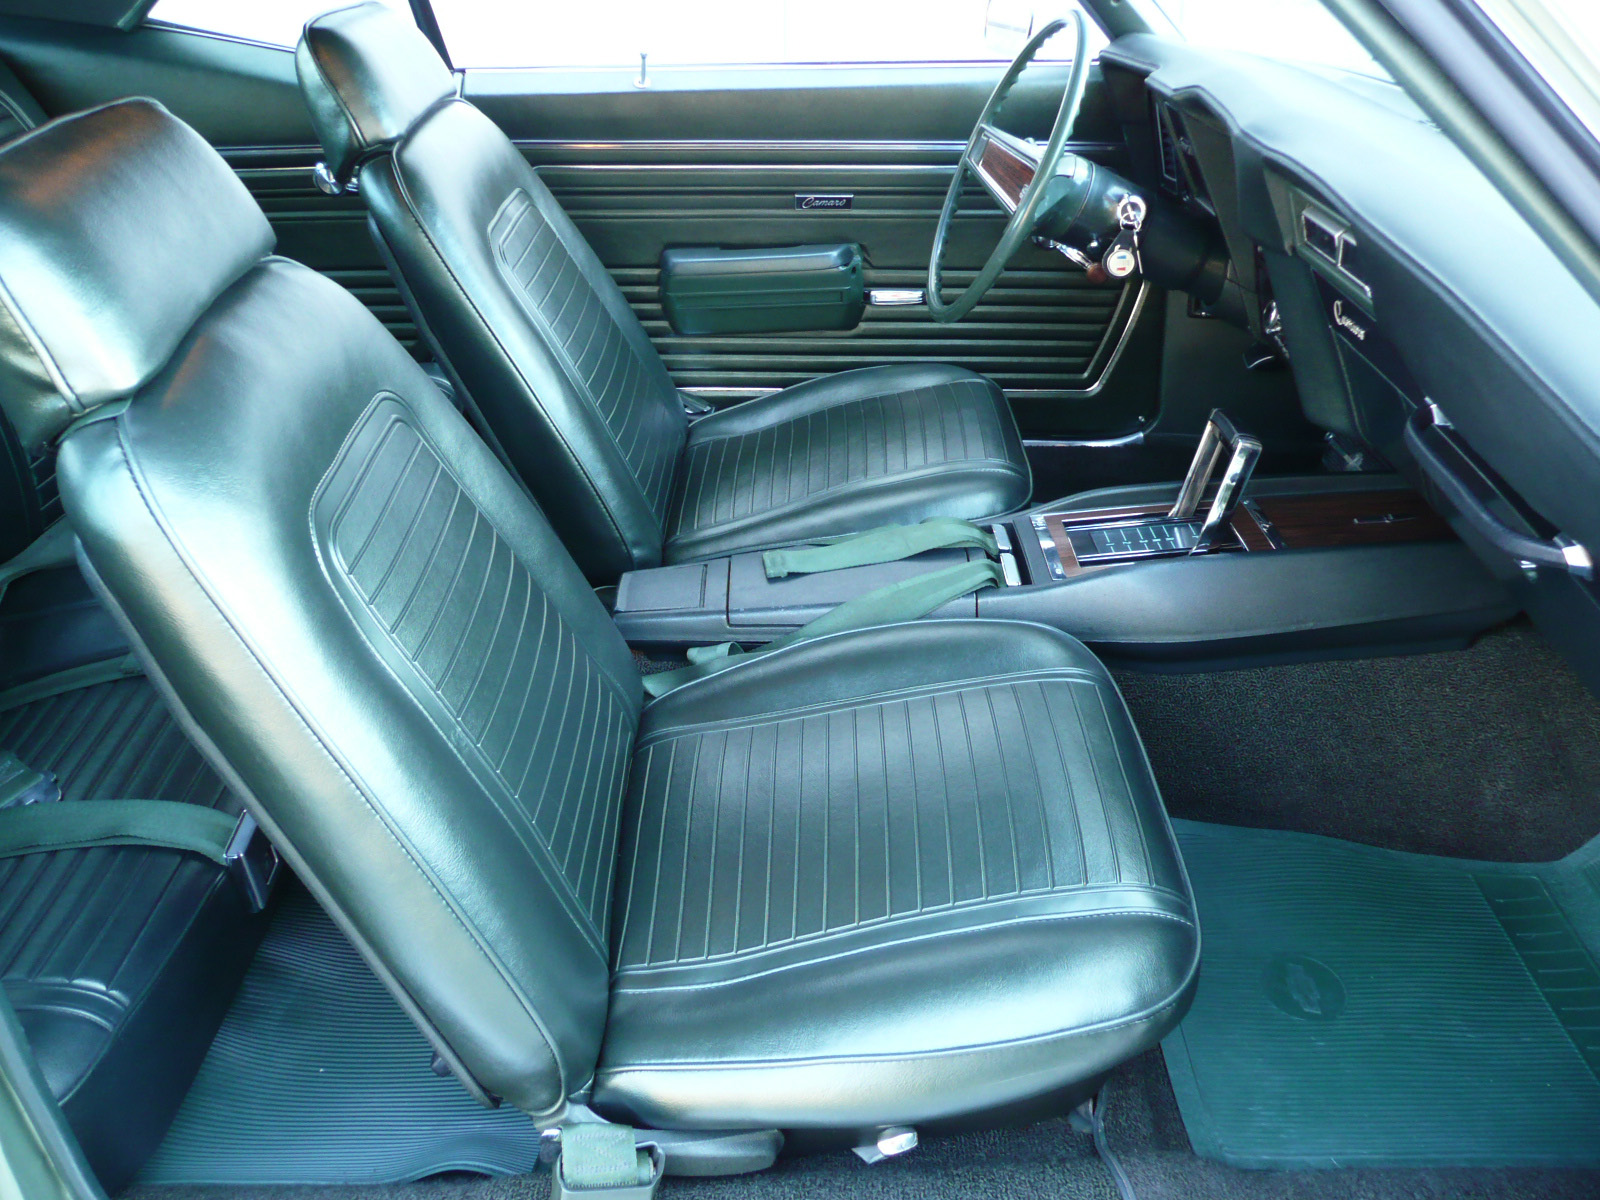 1969 CHEVROLET CAMARO SS COUPE - Interior - 80979